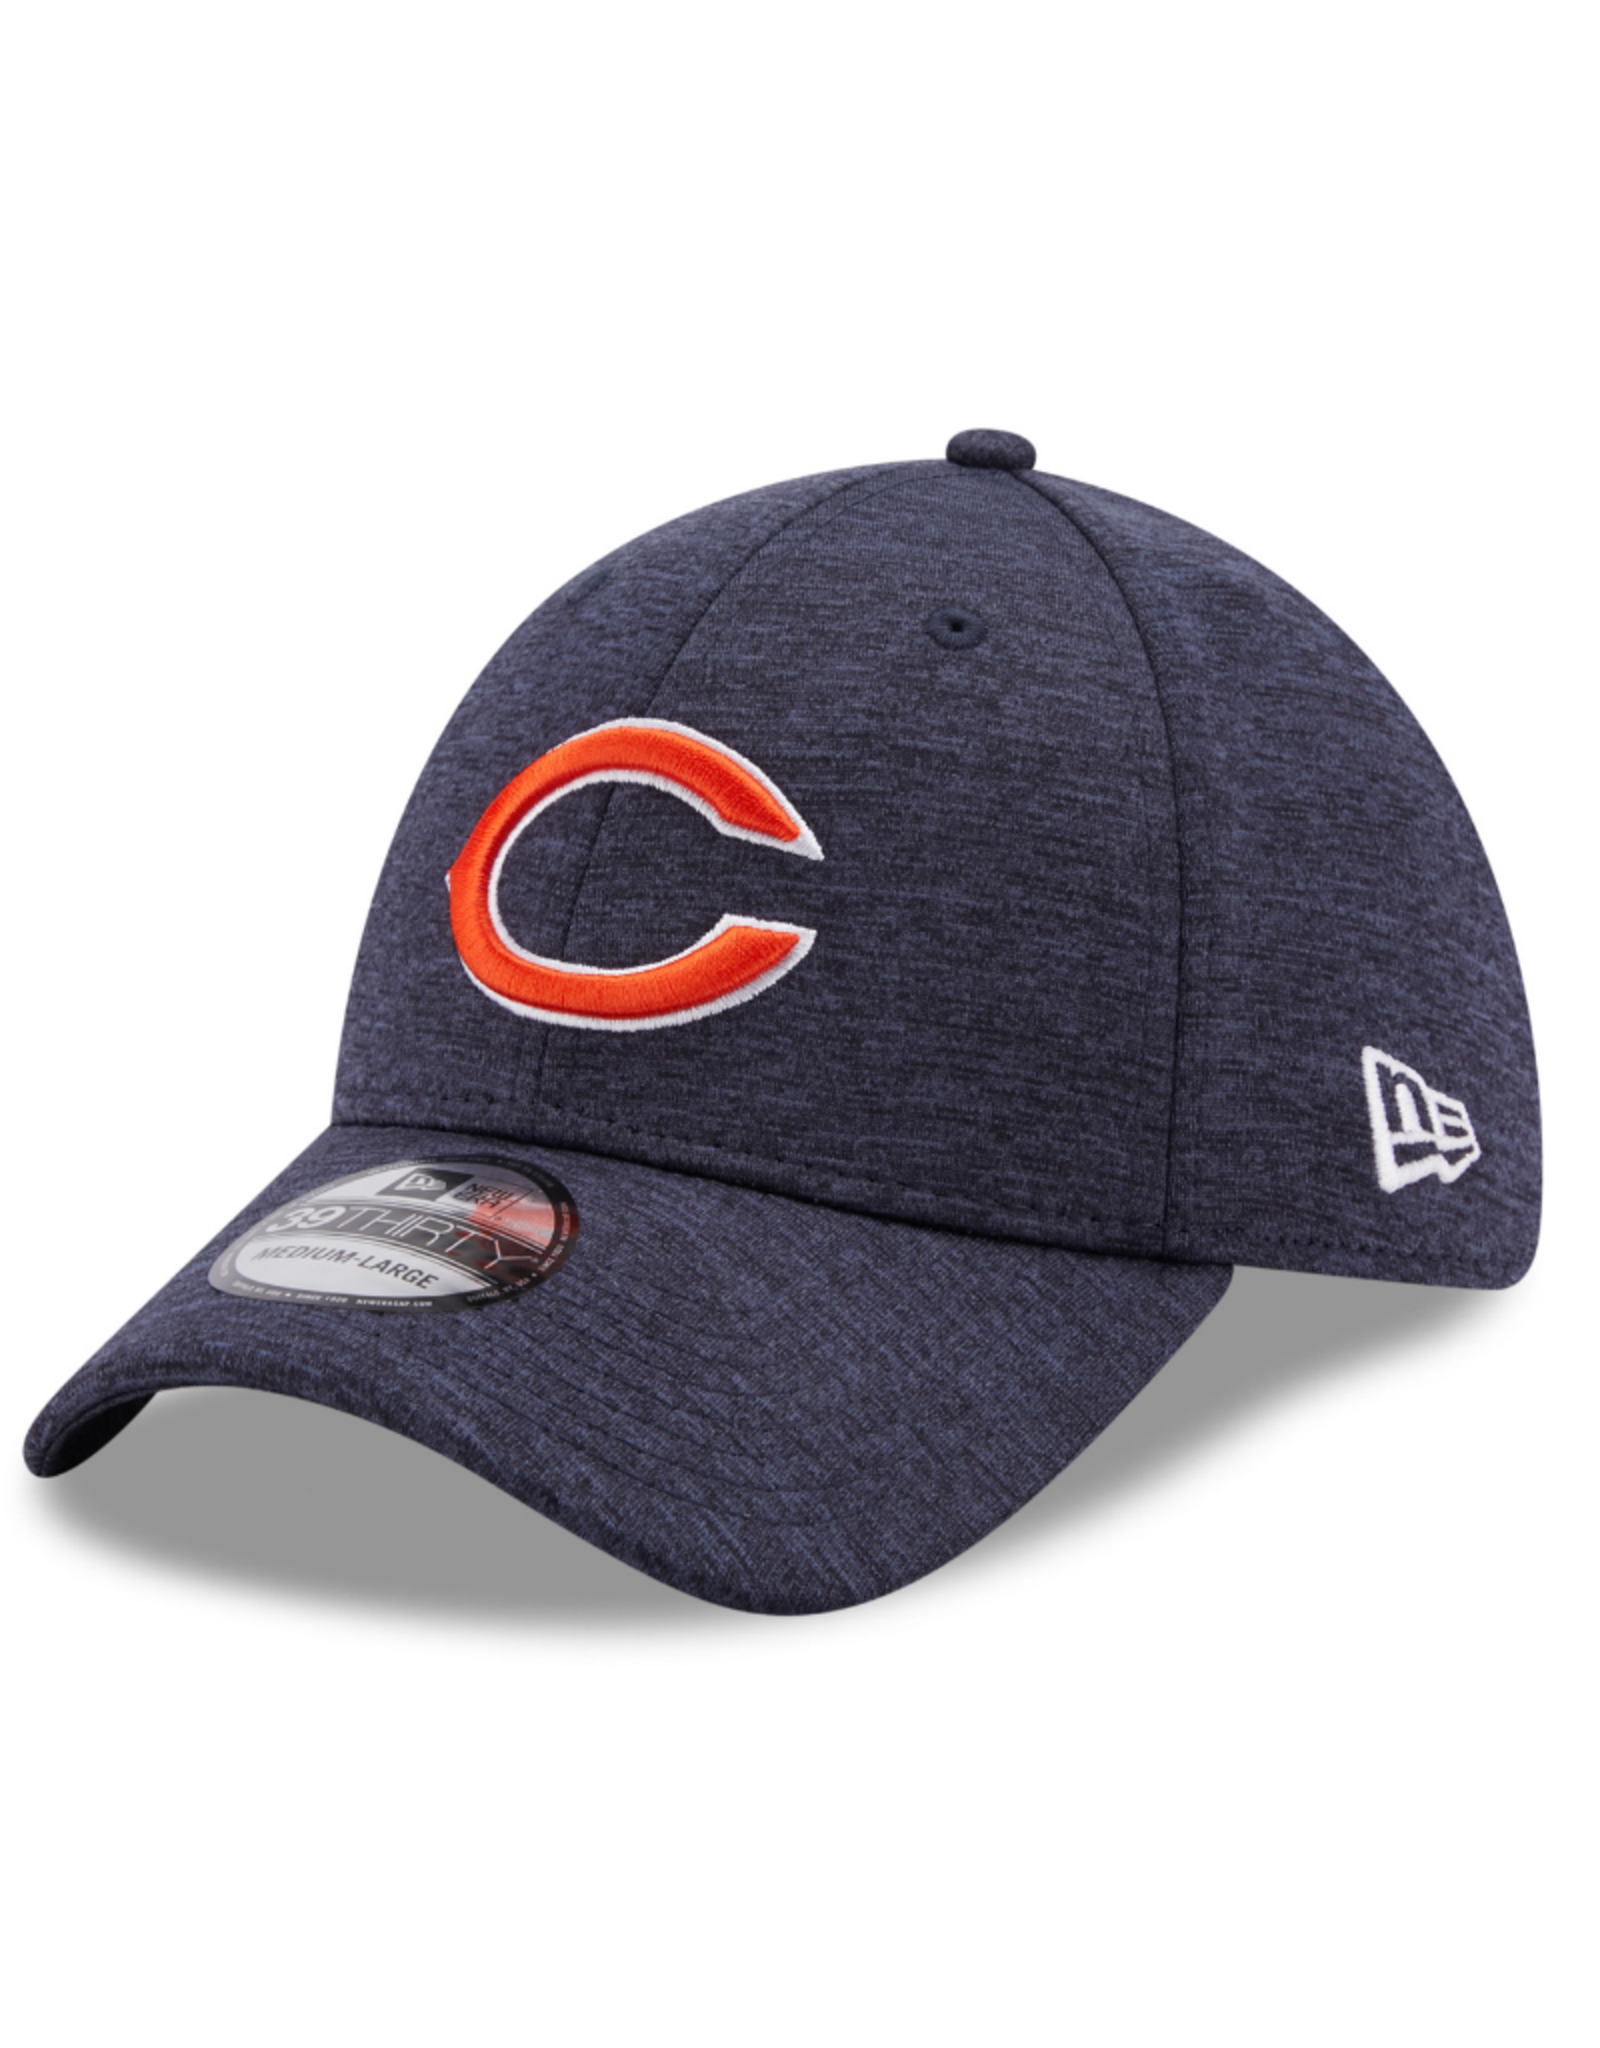 New Era Adult 39THIRTY Shadow B3 Hat Chicago Bears Navy